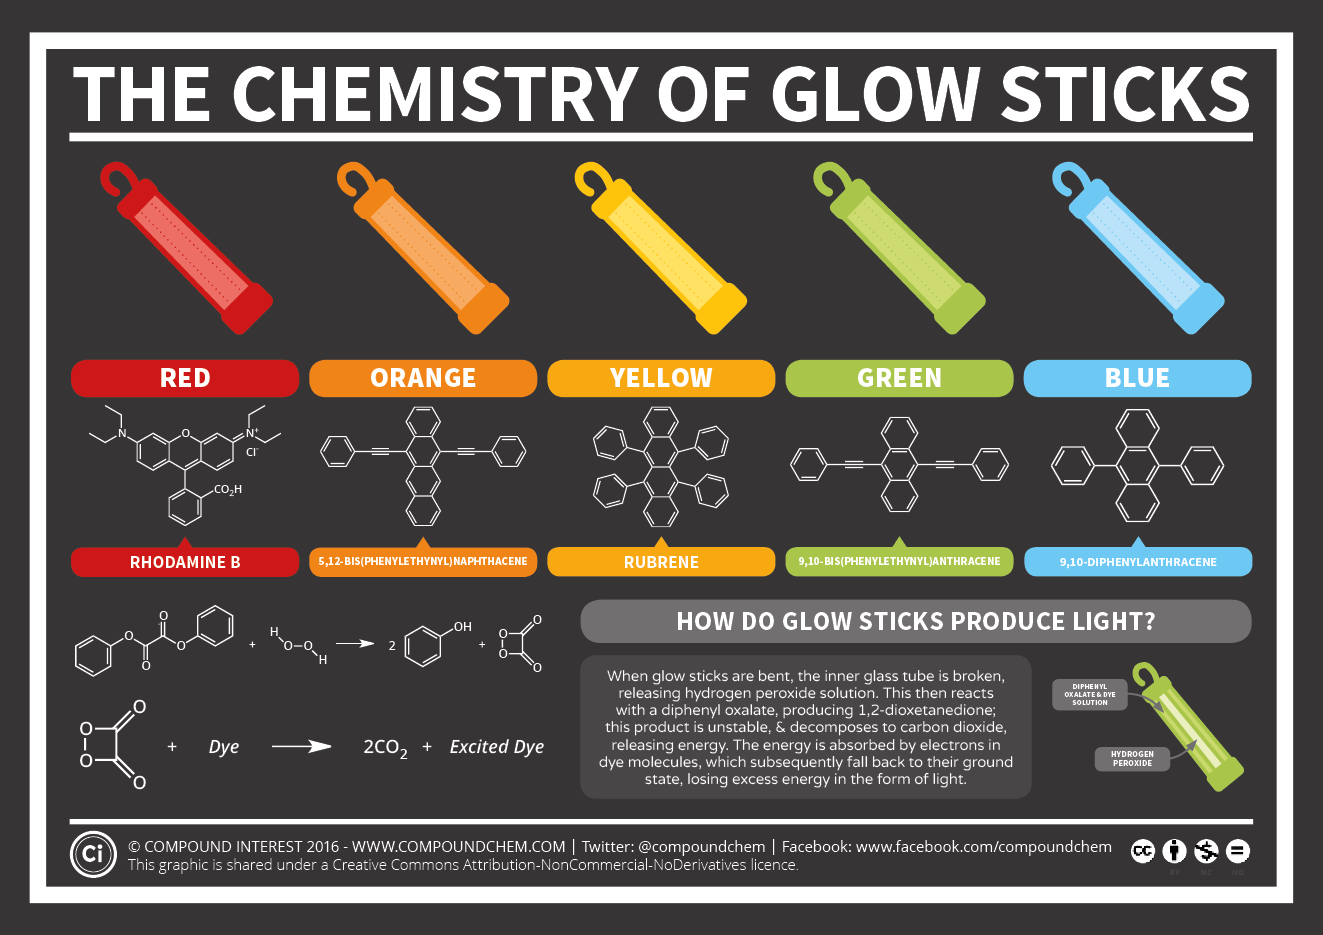 Lab Stick Diagram Chemistry Wire Data Schema Lm183008pct Namur Inductive Proximity Sensor Switch China Sensors The Of Glow Sticks Compound Interest Rh Compoundchem Com Troubleshooting Coag